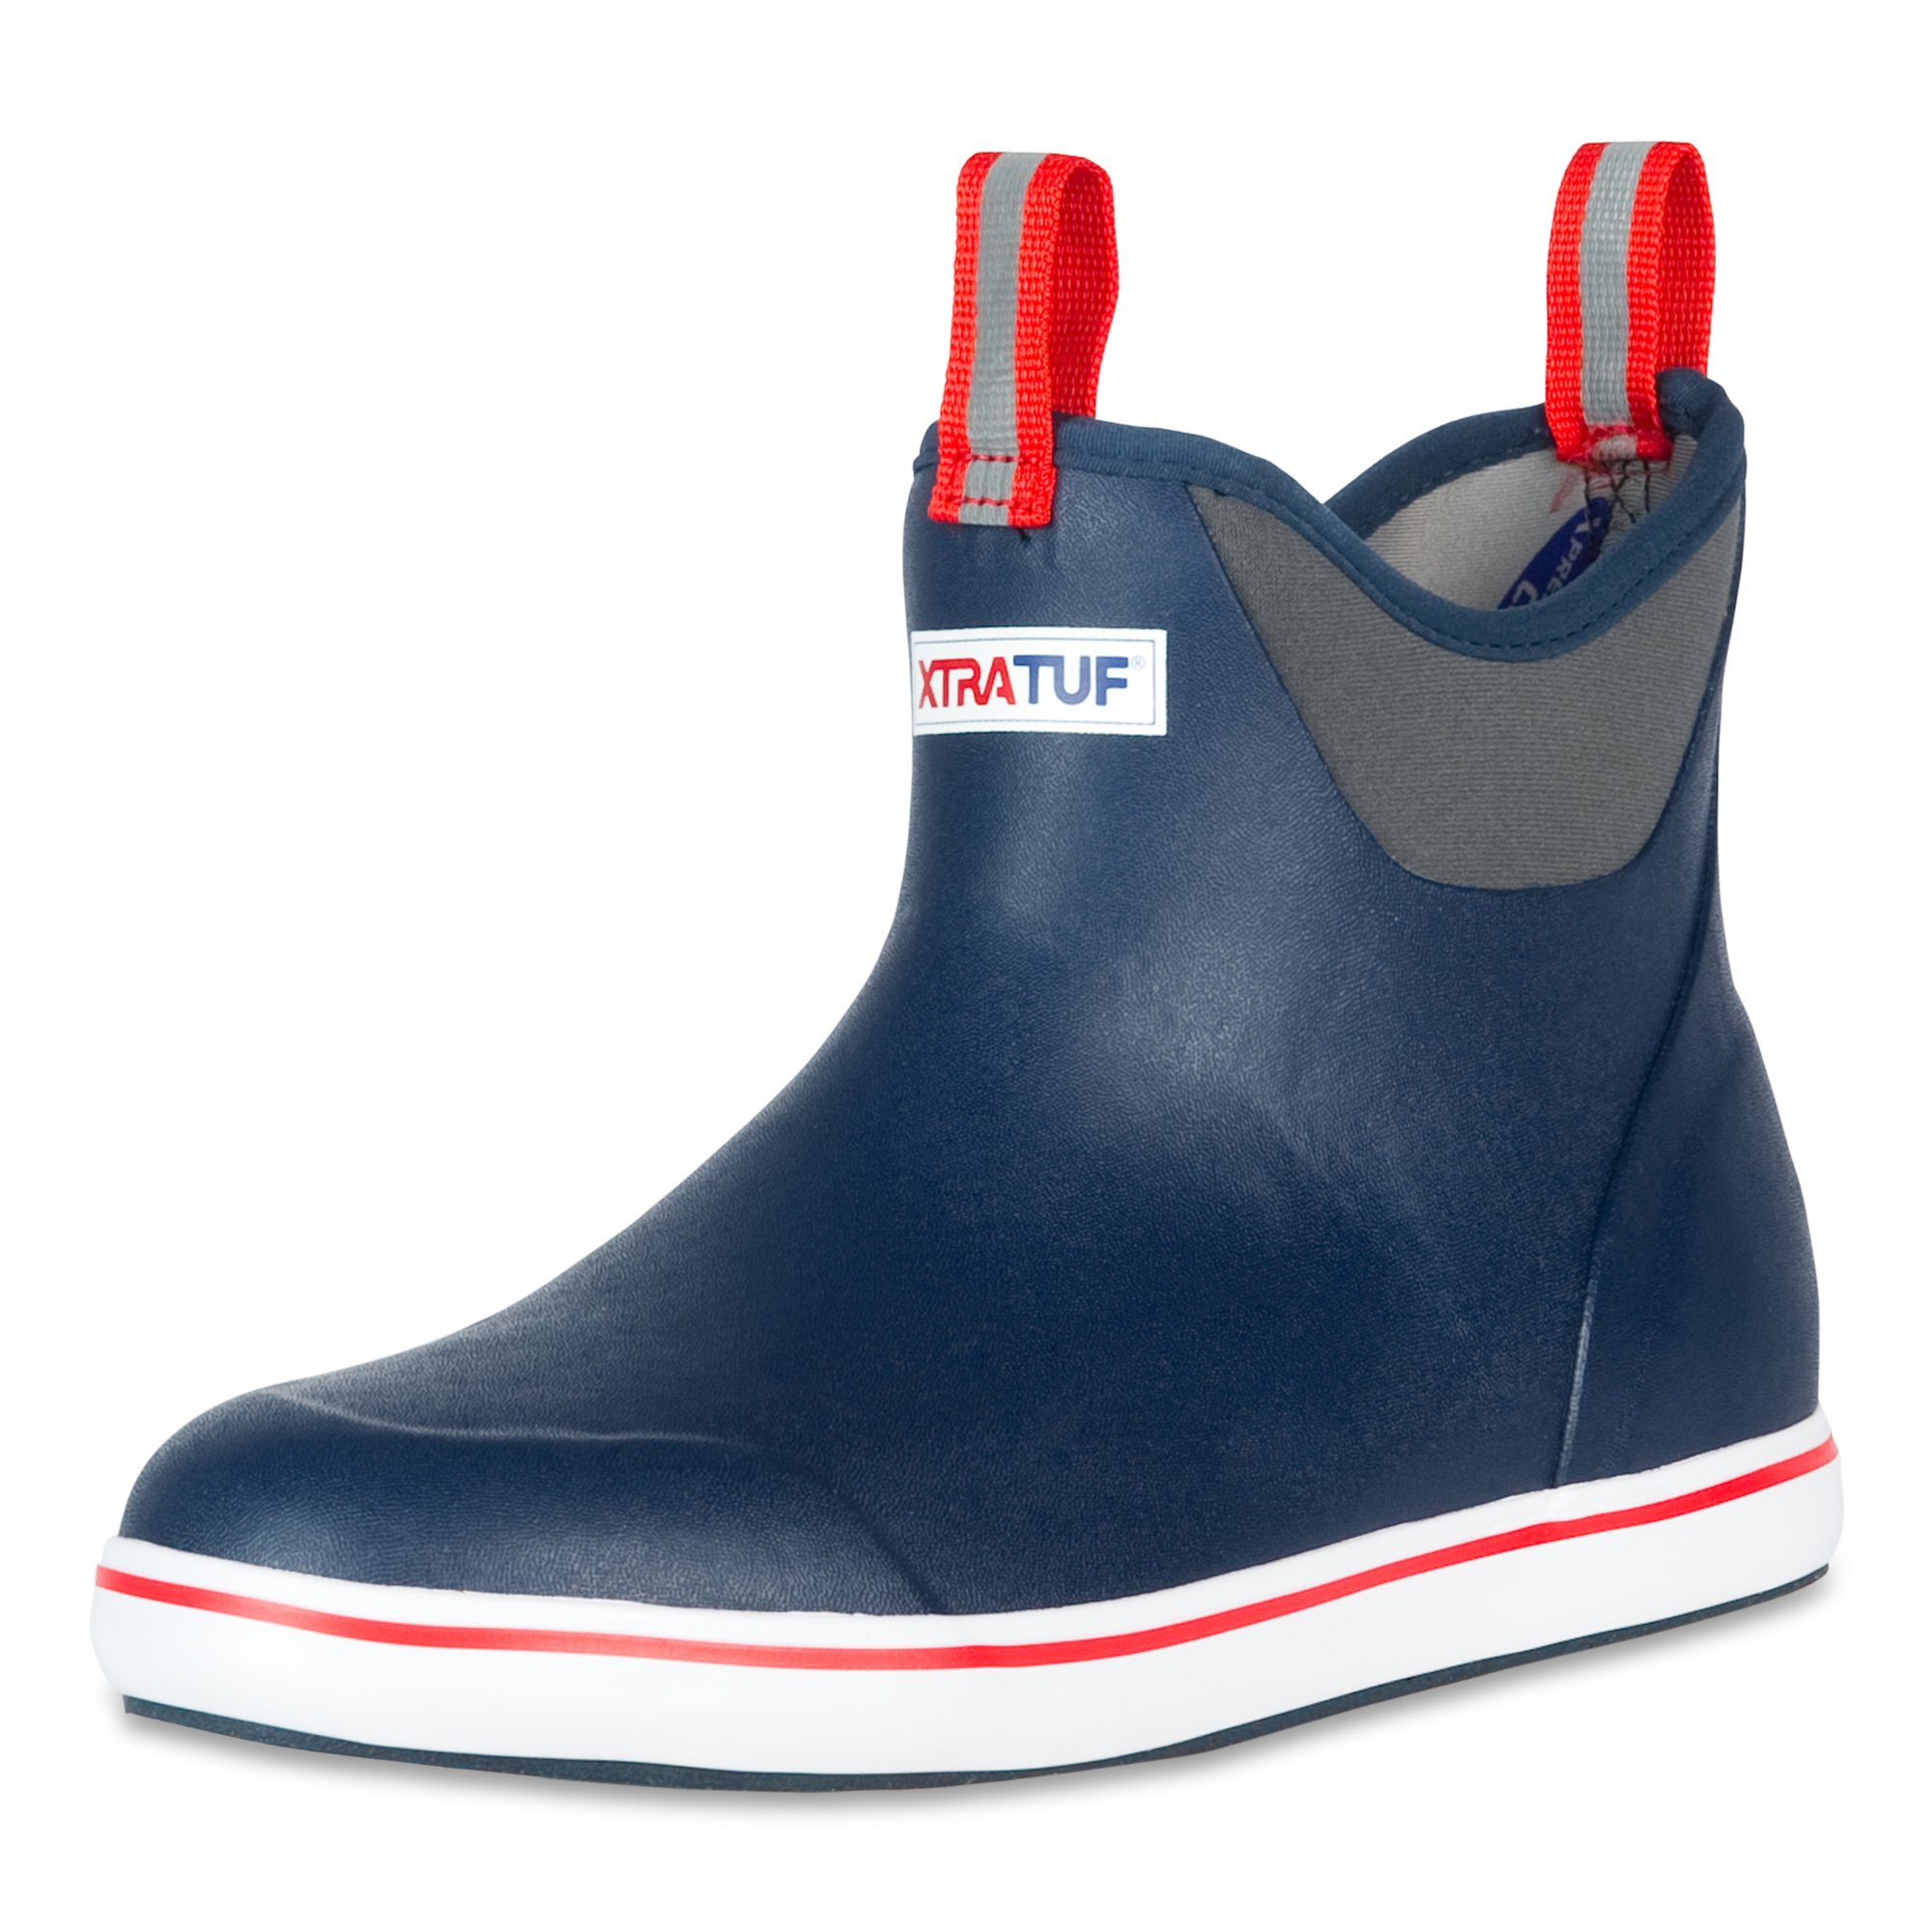 Xtratuf 22733-NVY-110 Performance Series 6'' Men's Full Rubber Ankle Deck Boots, Navy & Red (22733) by Xtratuf